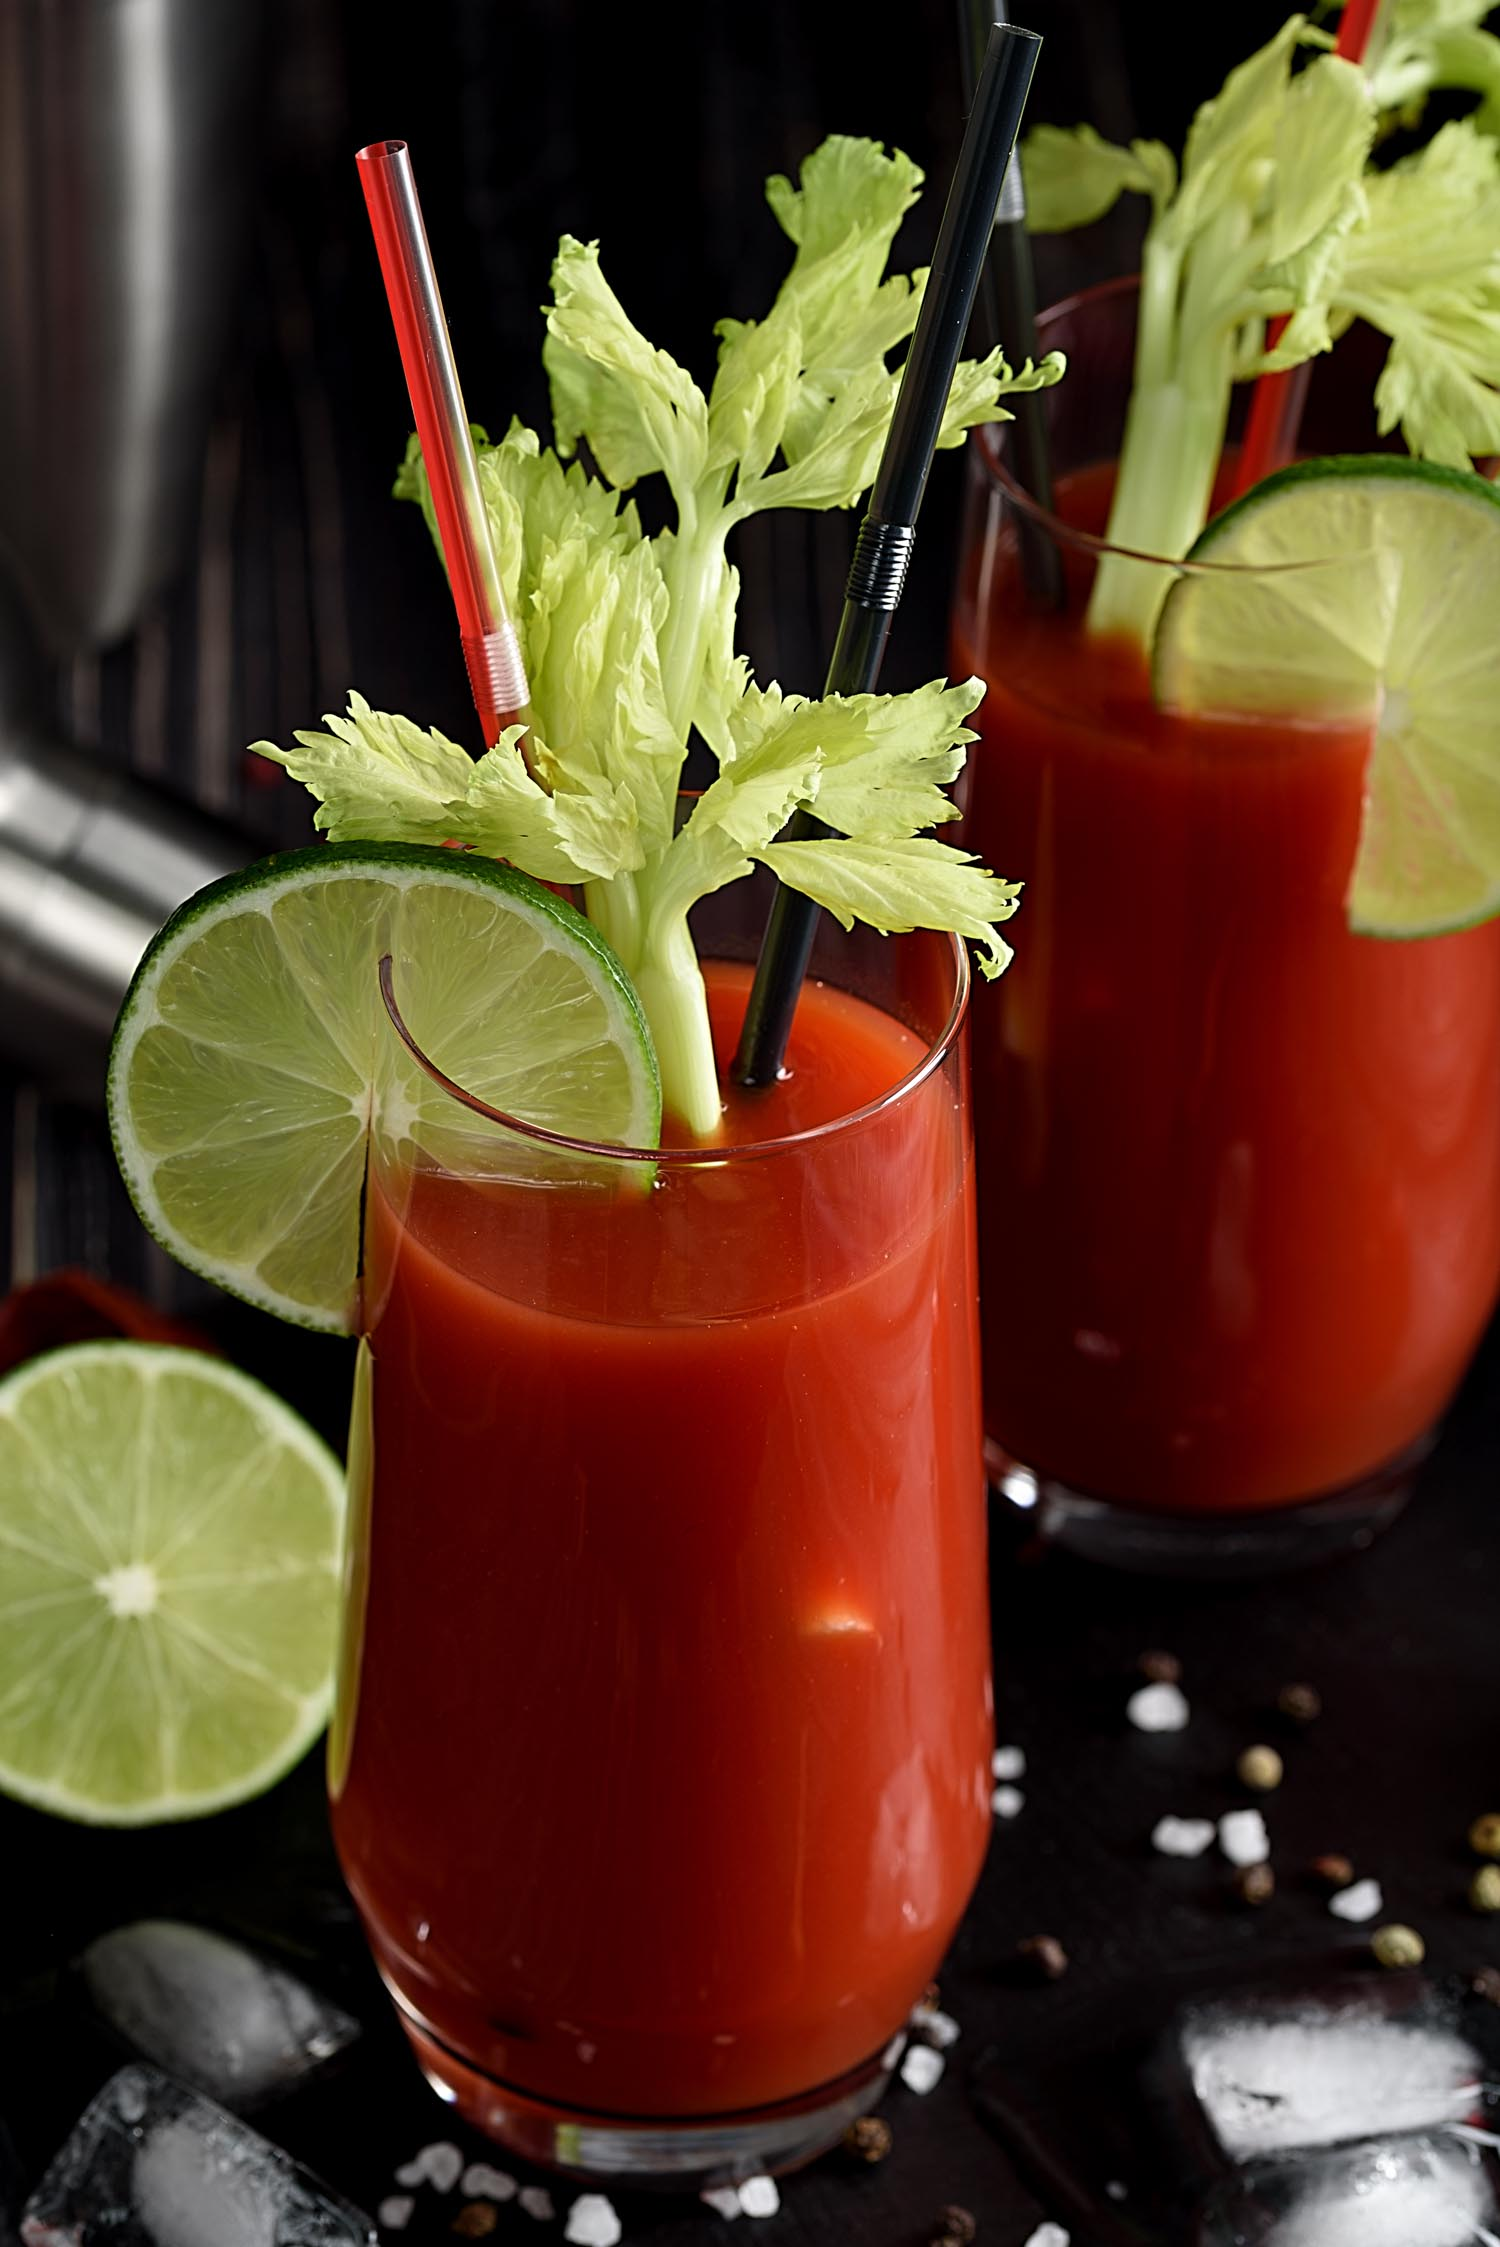 Canadian Caesar drink and ingredients: pepper chili, lime, celery, ice and shaker.